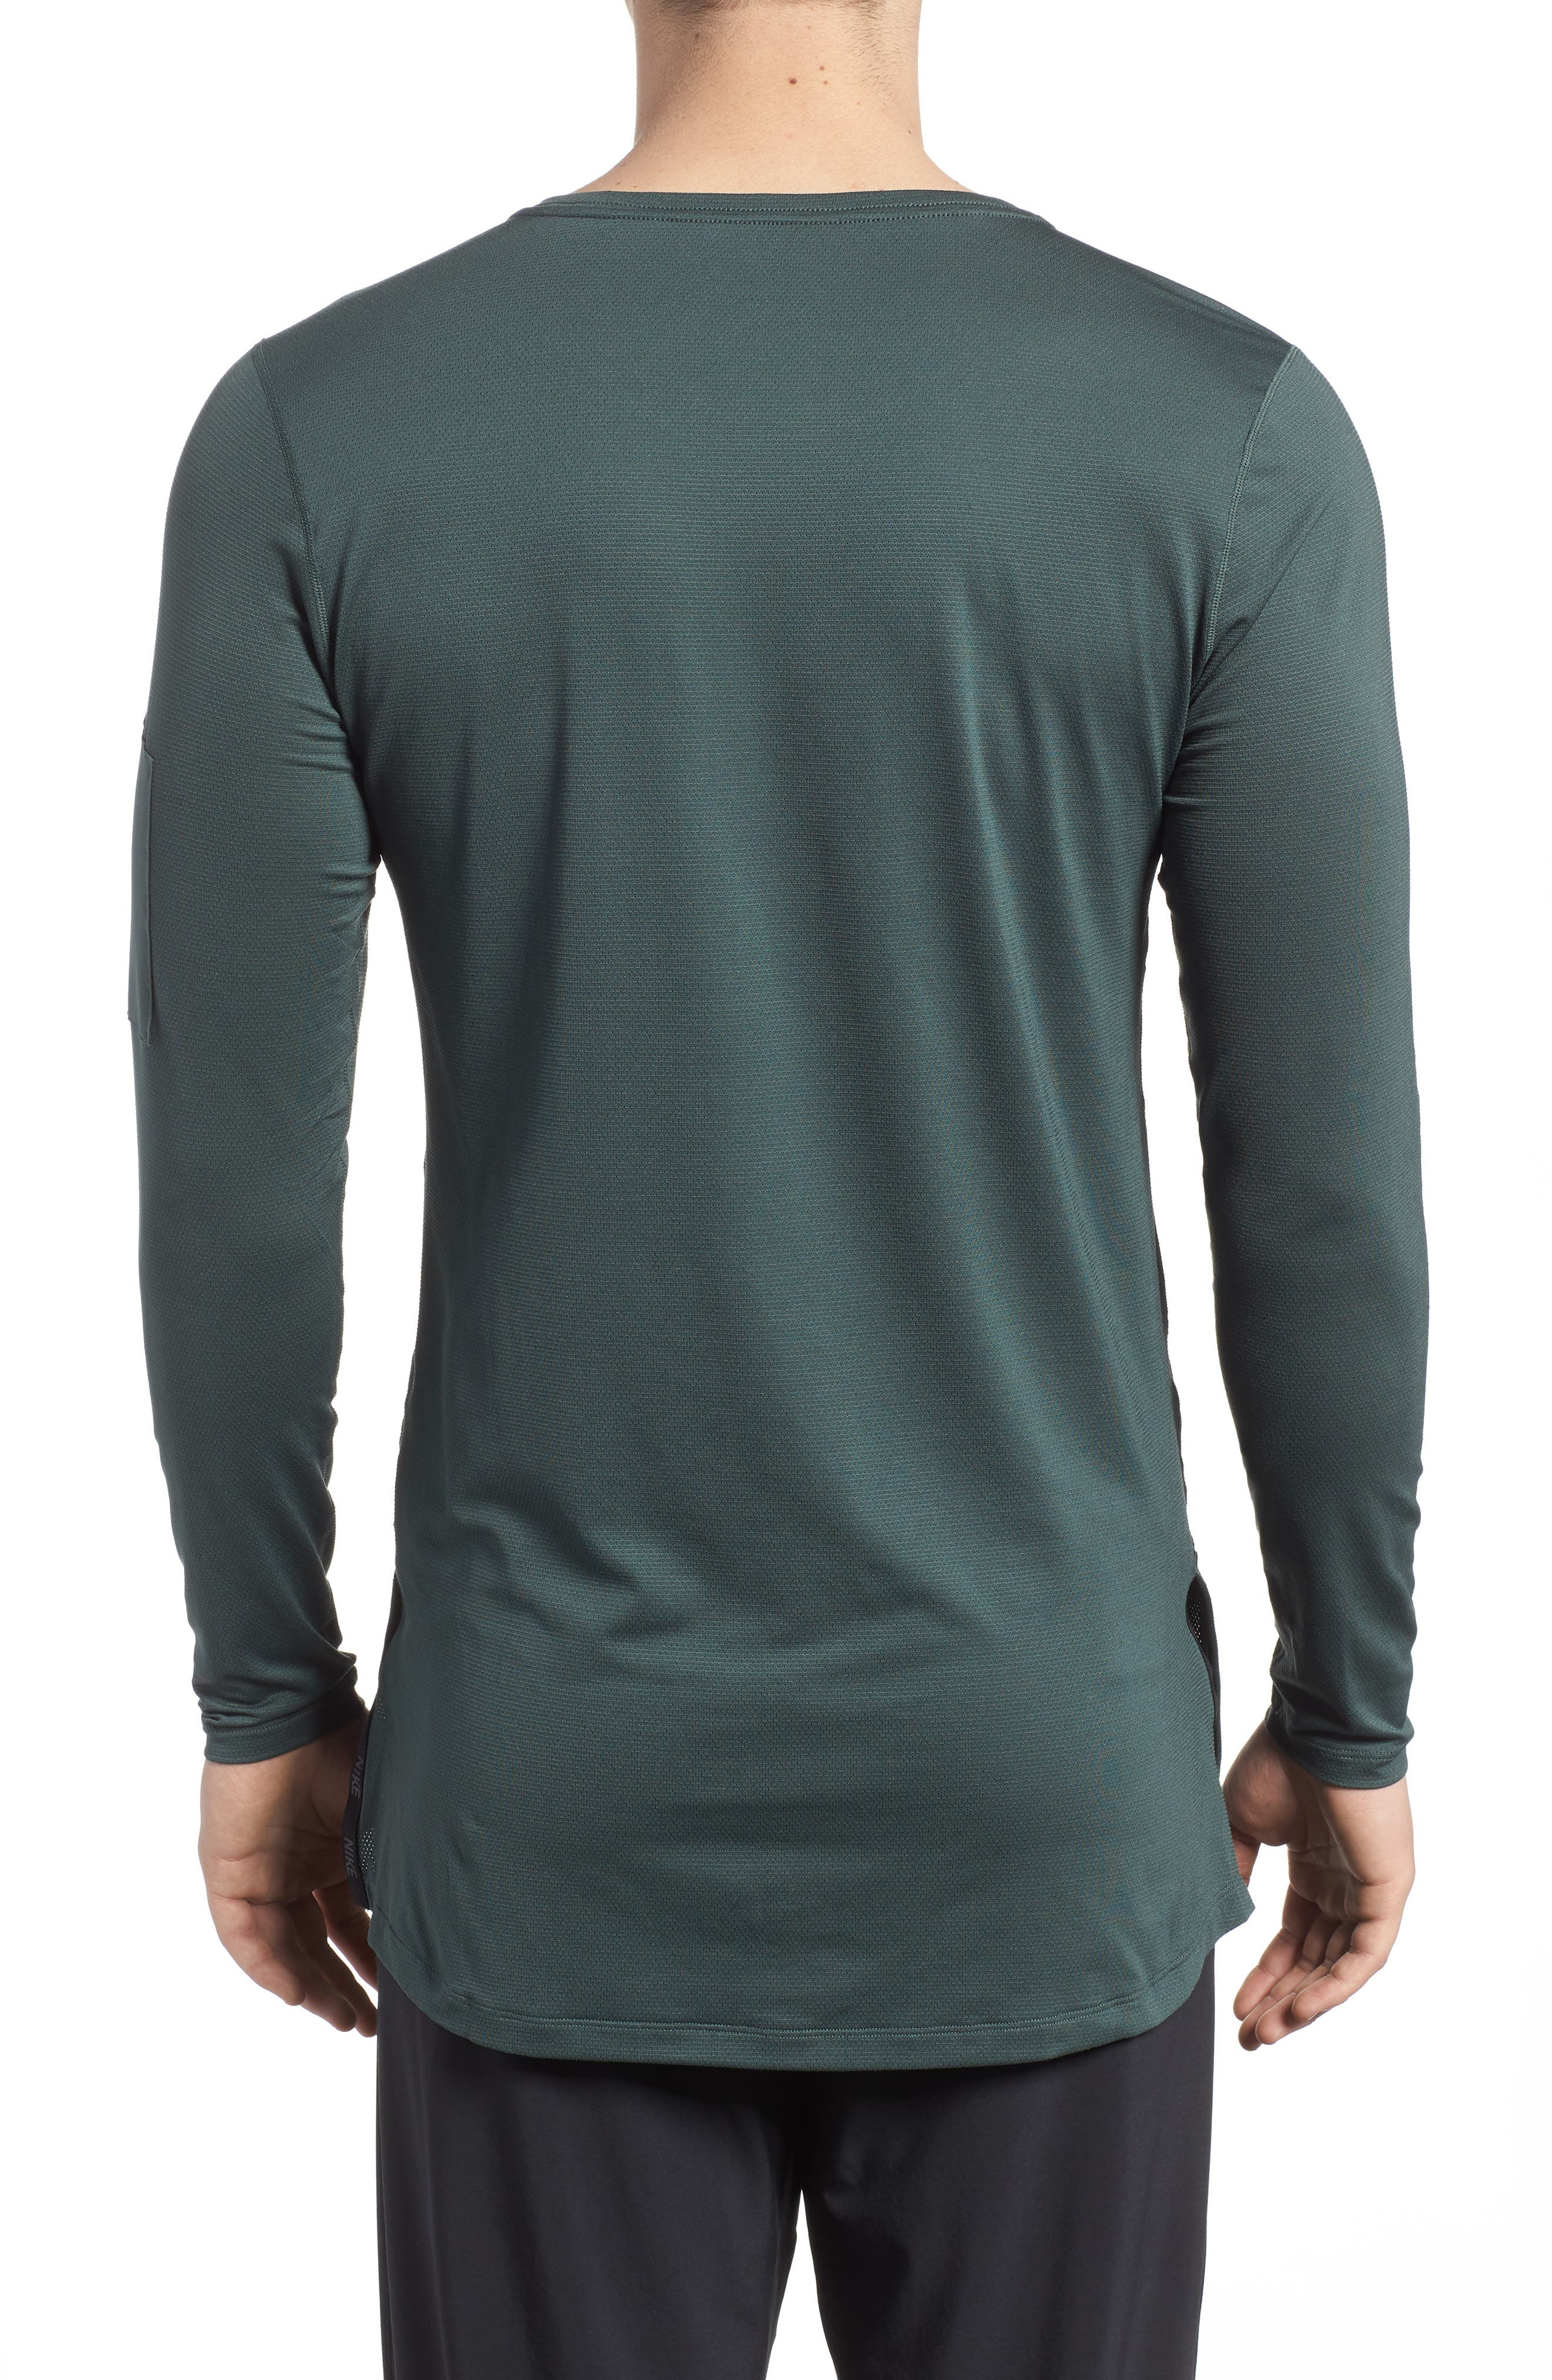 Pro Utility Fitted Training Top,                             Alternate thumbnail 2, color,                             Vintage Green/ Black